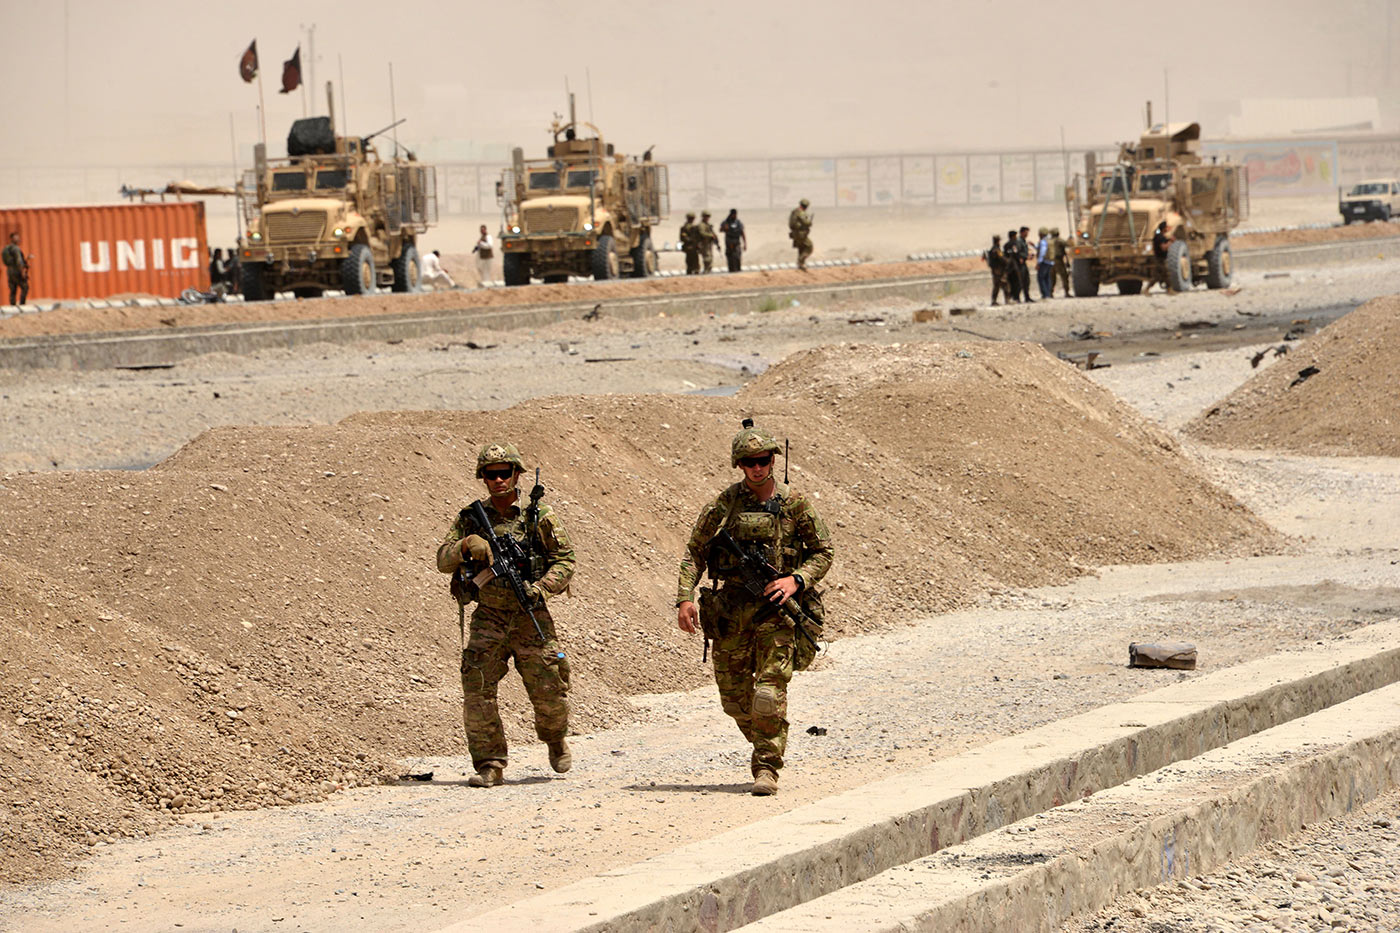 US soldiers at the site of a Taliban suicide attack in Kandahar earlier in 2017